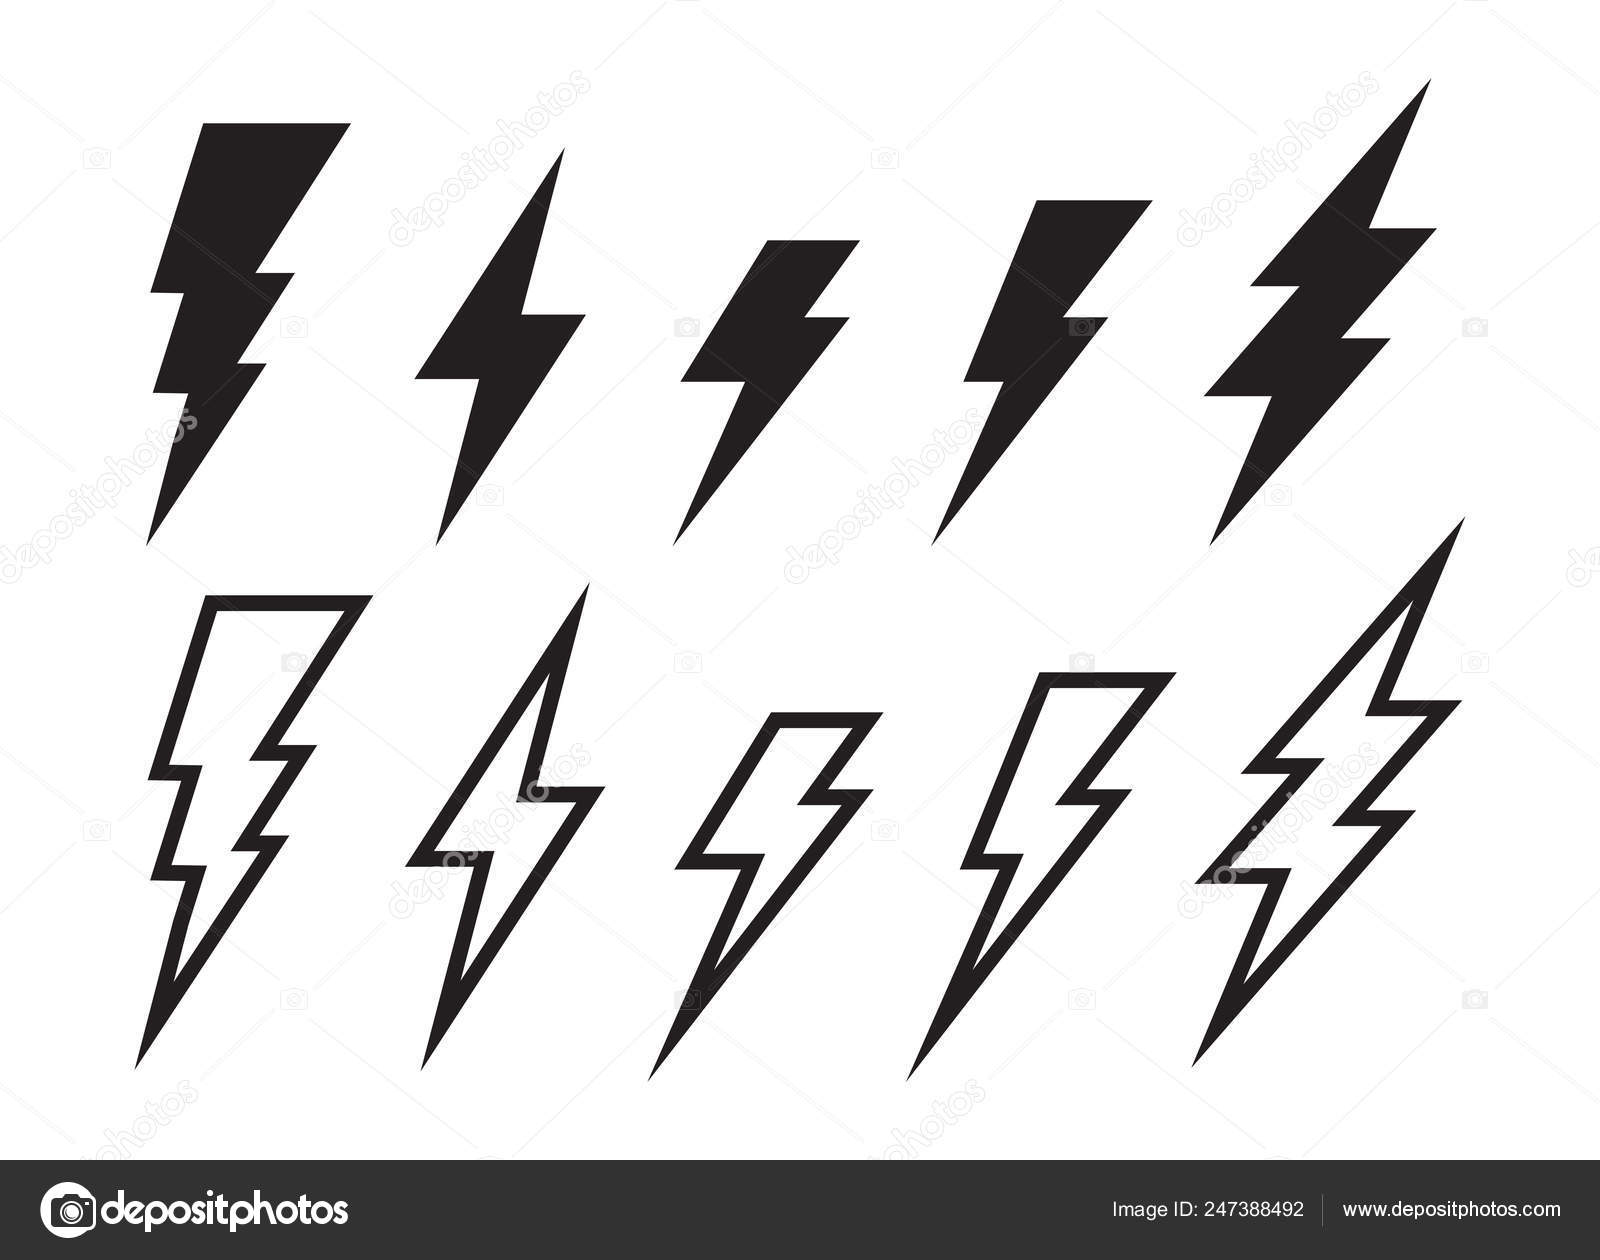 lighting strike simple vector icon isolated battery charger pictogram lightning stock vector c artem stepanov 247388492 lighting strike simple vector icon isolated battery charger pictogram lightning stock vector c artem stepanov 247388492